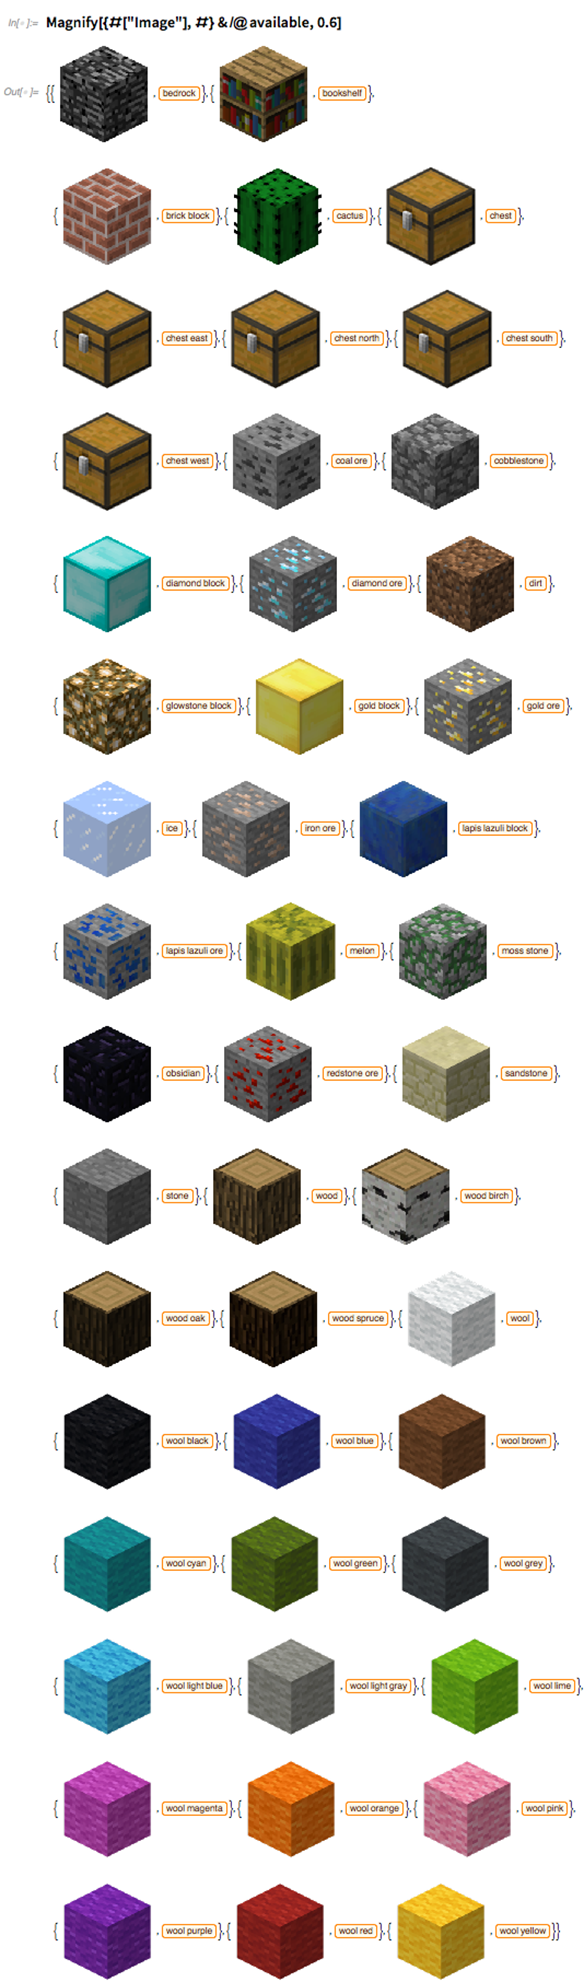 Playing With Code Four Minecraft Projects Using The Wolfram Language By Tech Based Teaching Editor Tech Based Teaching Computational Thinking In The Classroom Medium